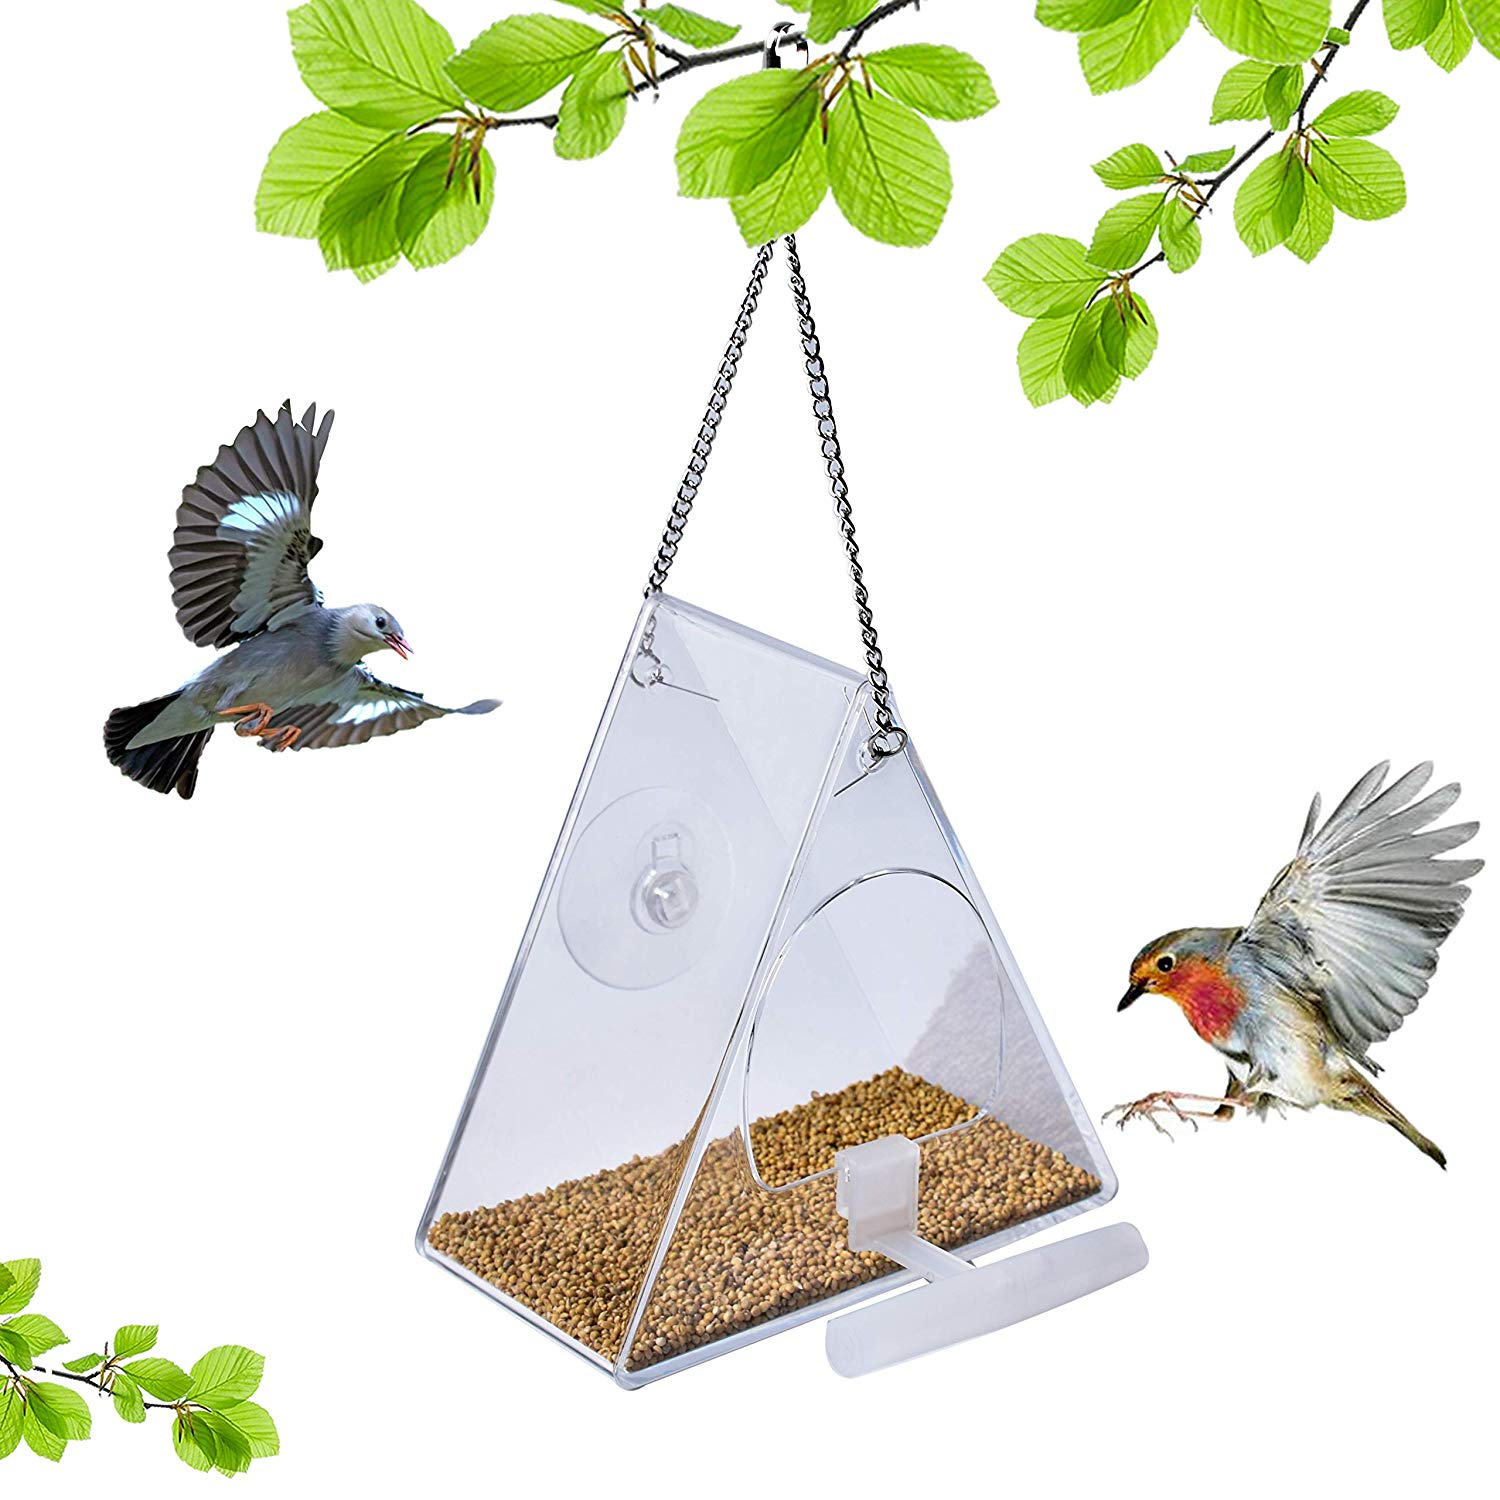 Window Bird Feeder Clear Perspex Hanging Bird Feeder With Suction Cup.